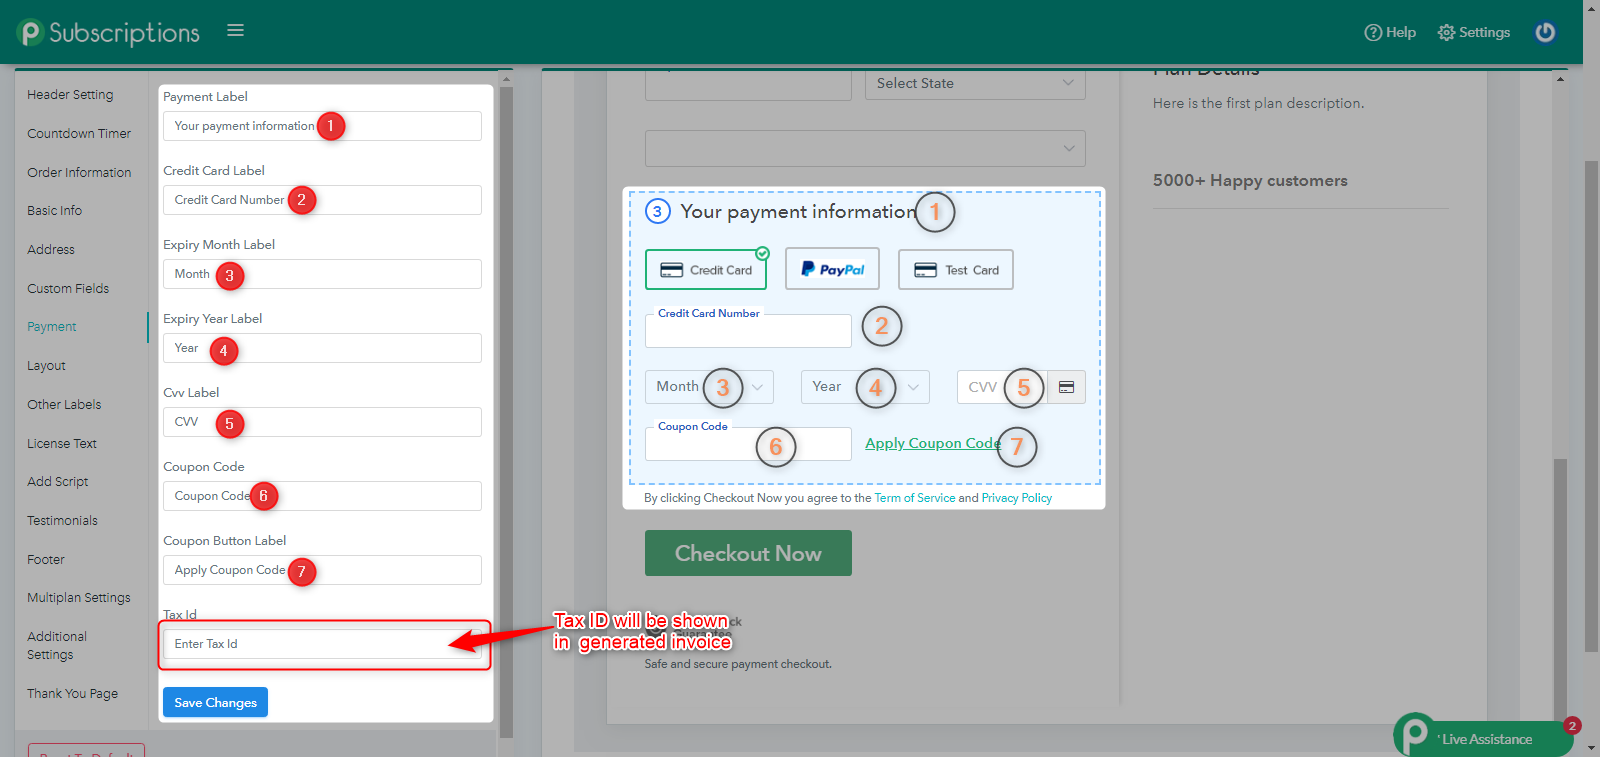 Payment Information Setting